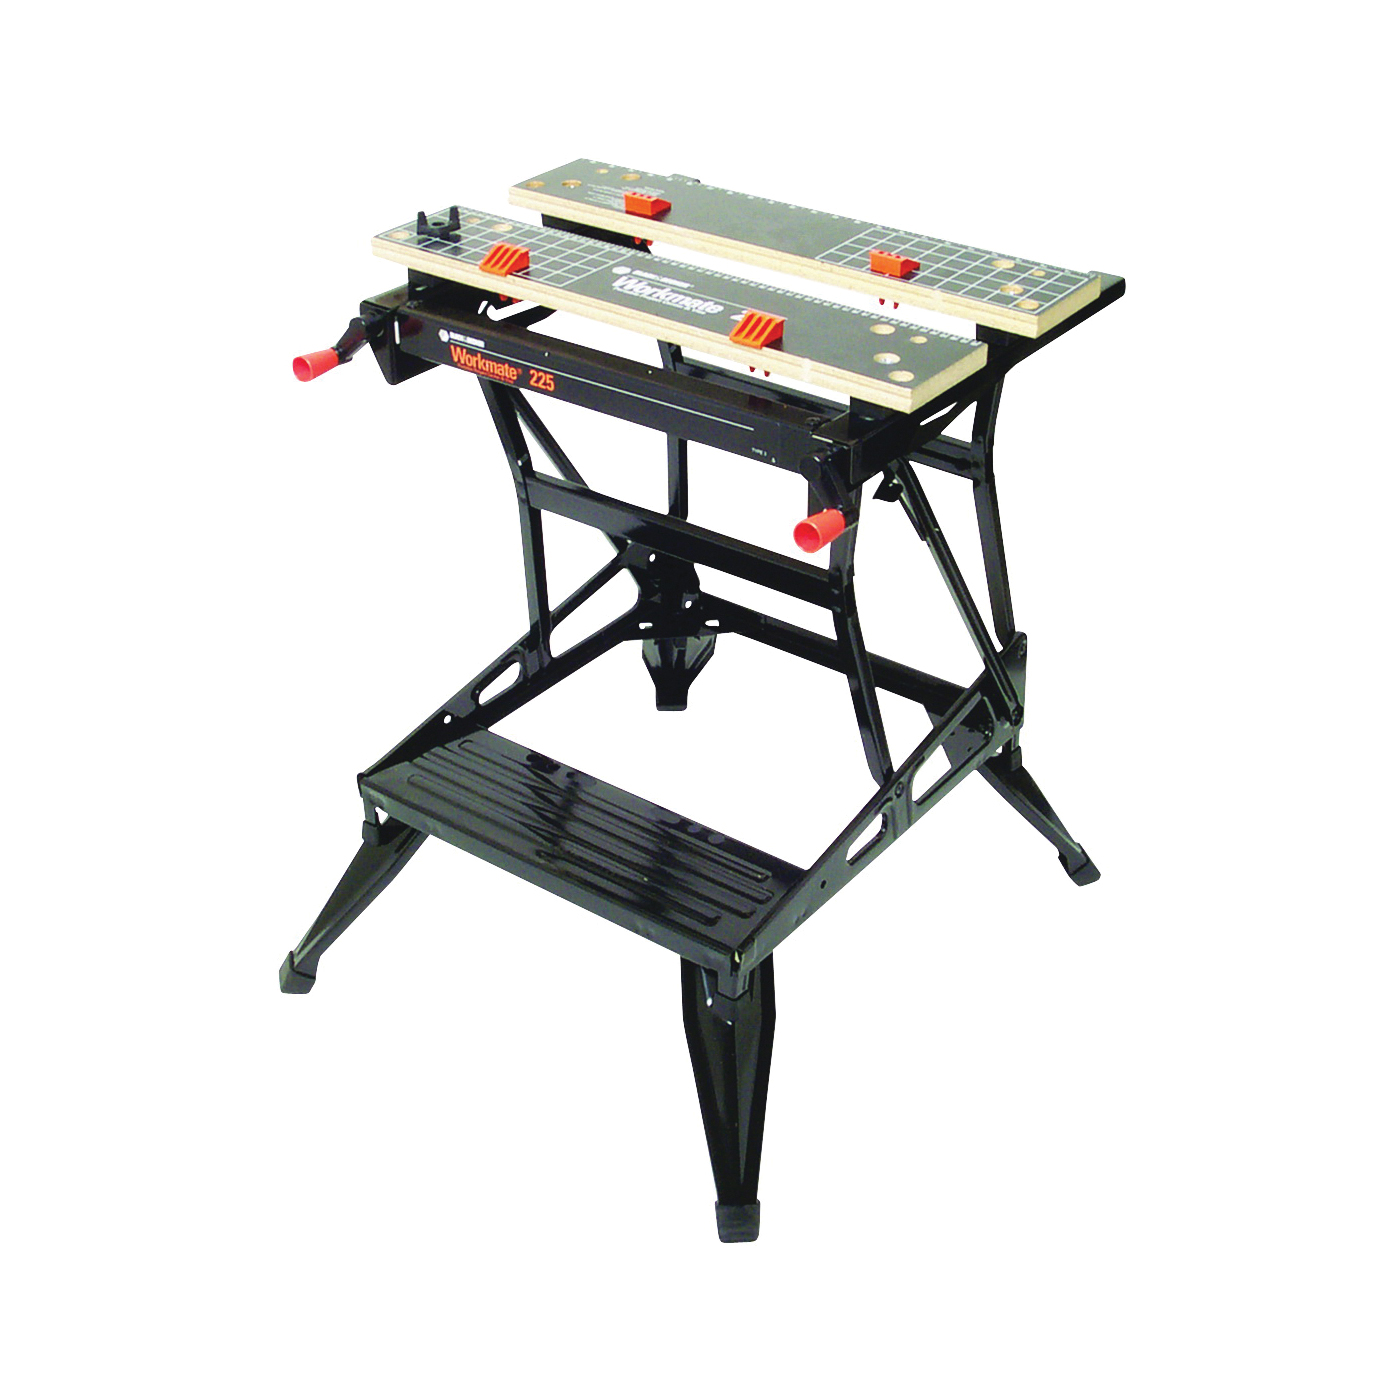 Picture of Black+Decker WM225 Workbench with One-Handed Clamp, 24 in OAW, 30 in OAH, 13-1/2 in OAD, 450 lb Capacity